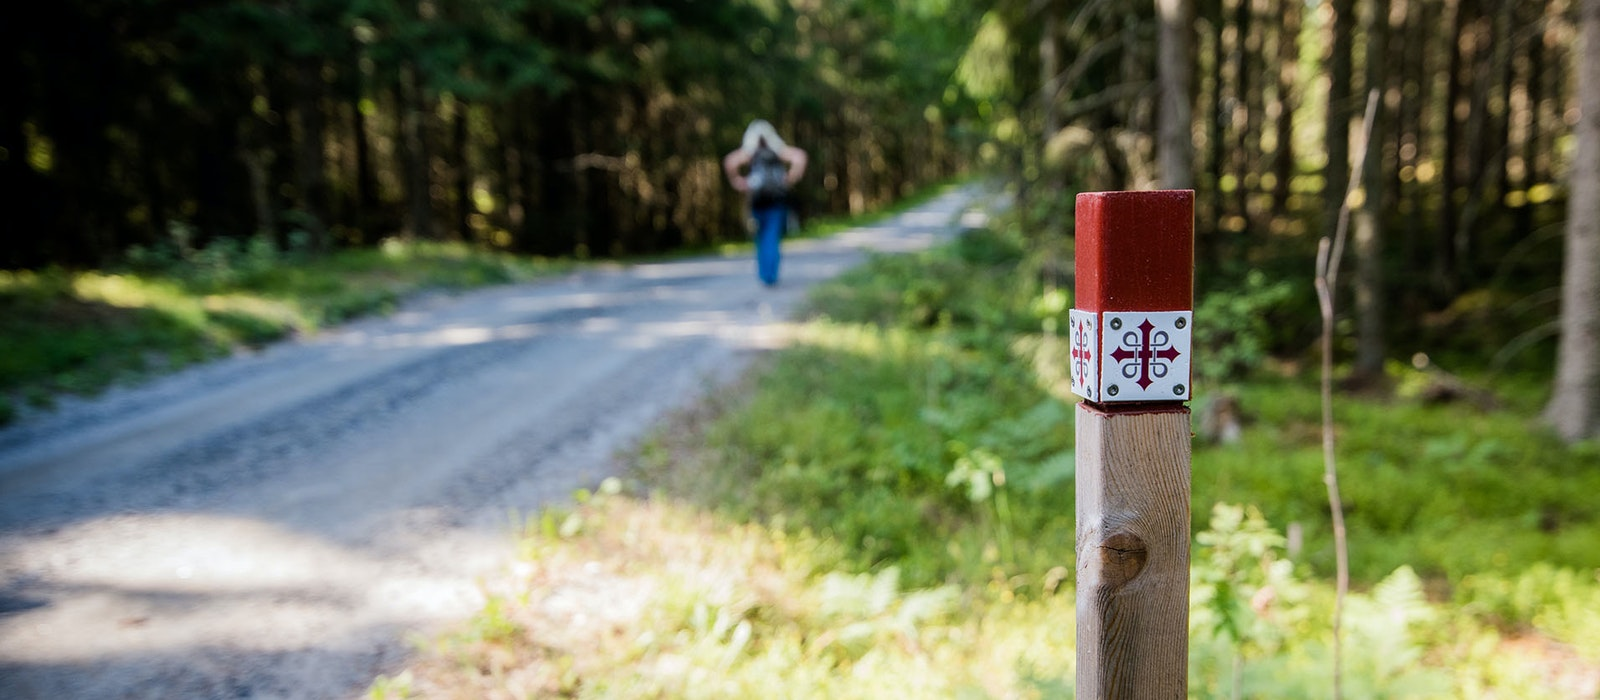 The symbol on the red-and-white markers along the St. Olav Ways hints at the ancient trail's history and pays homage to its namesake.